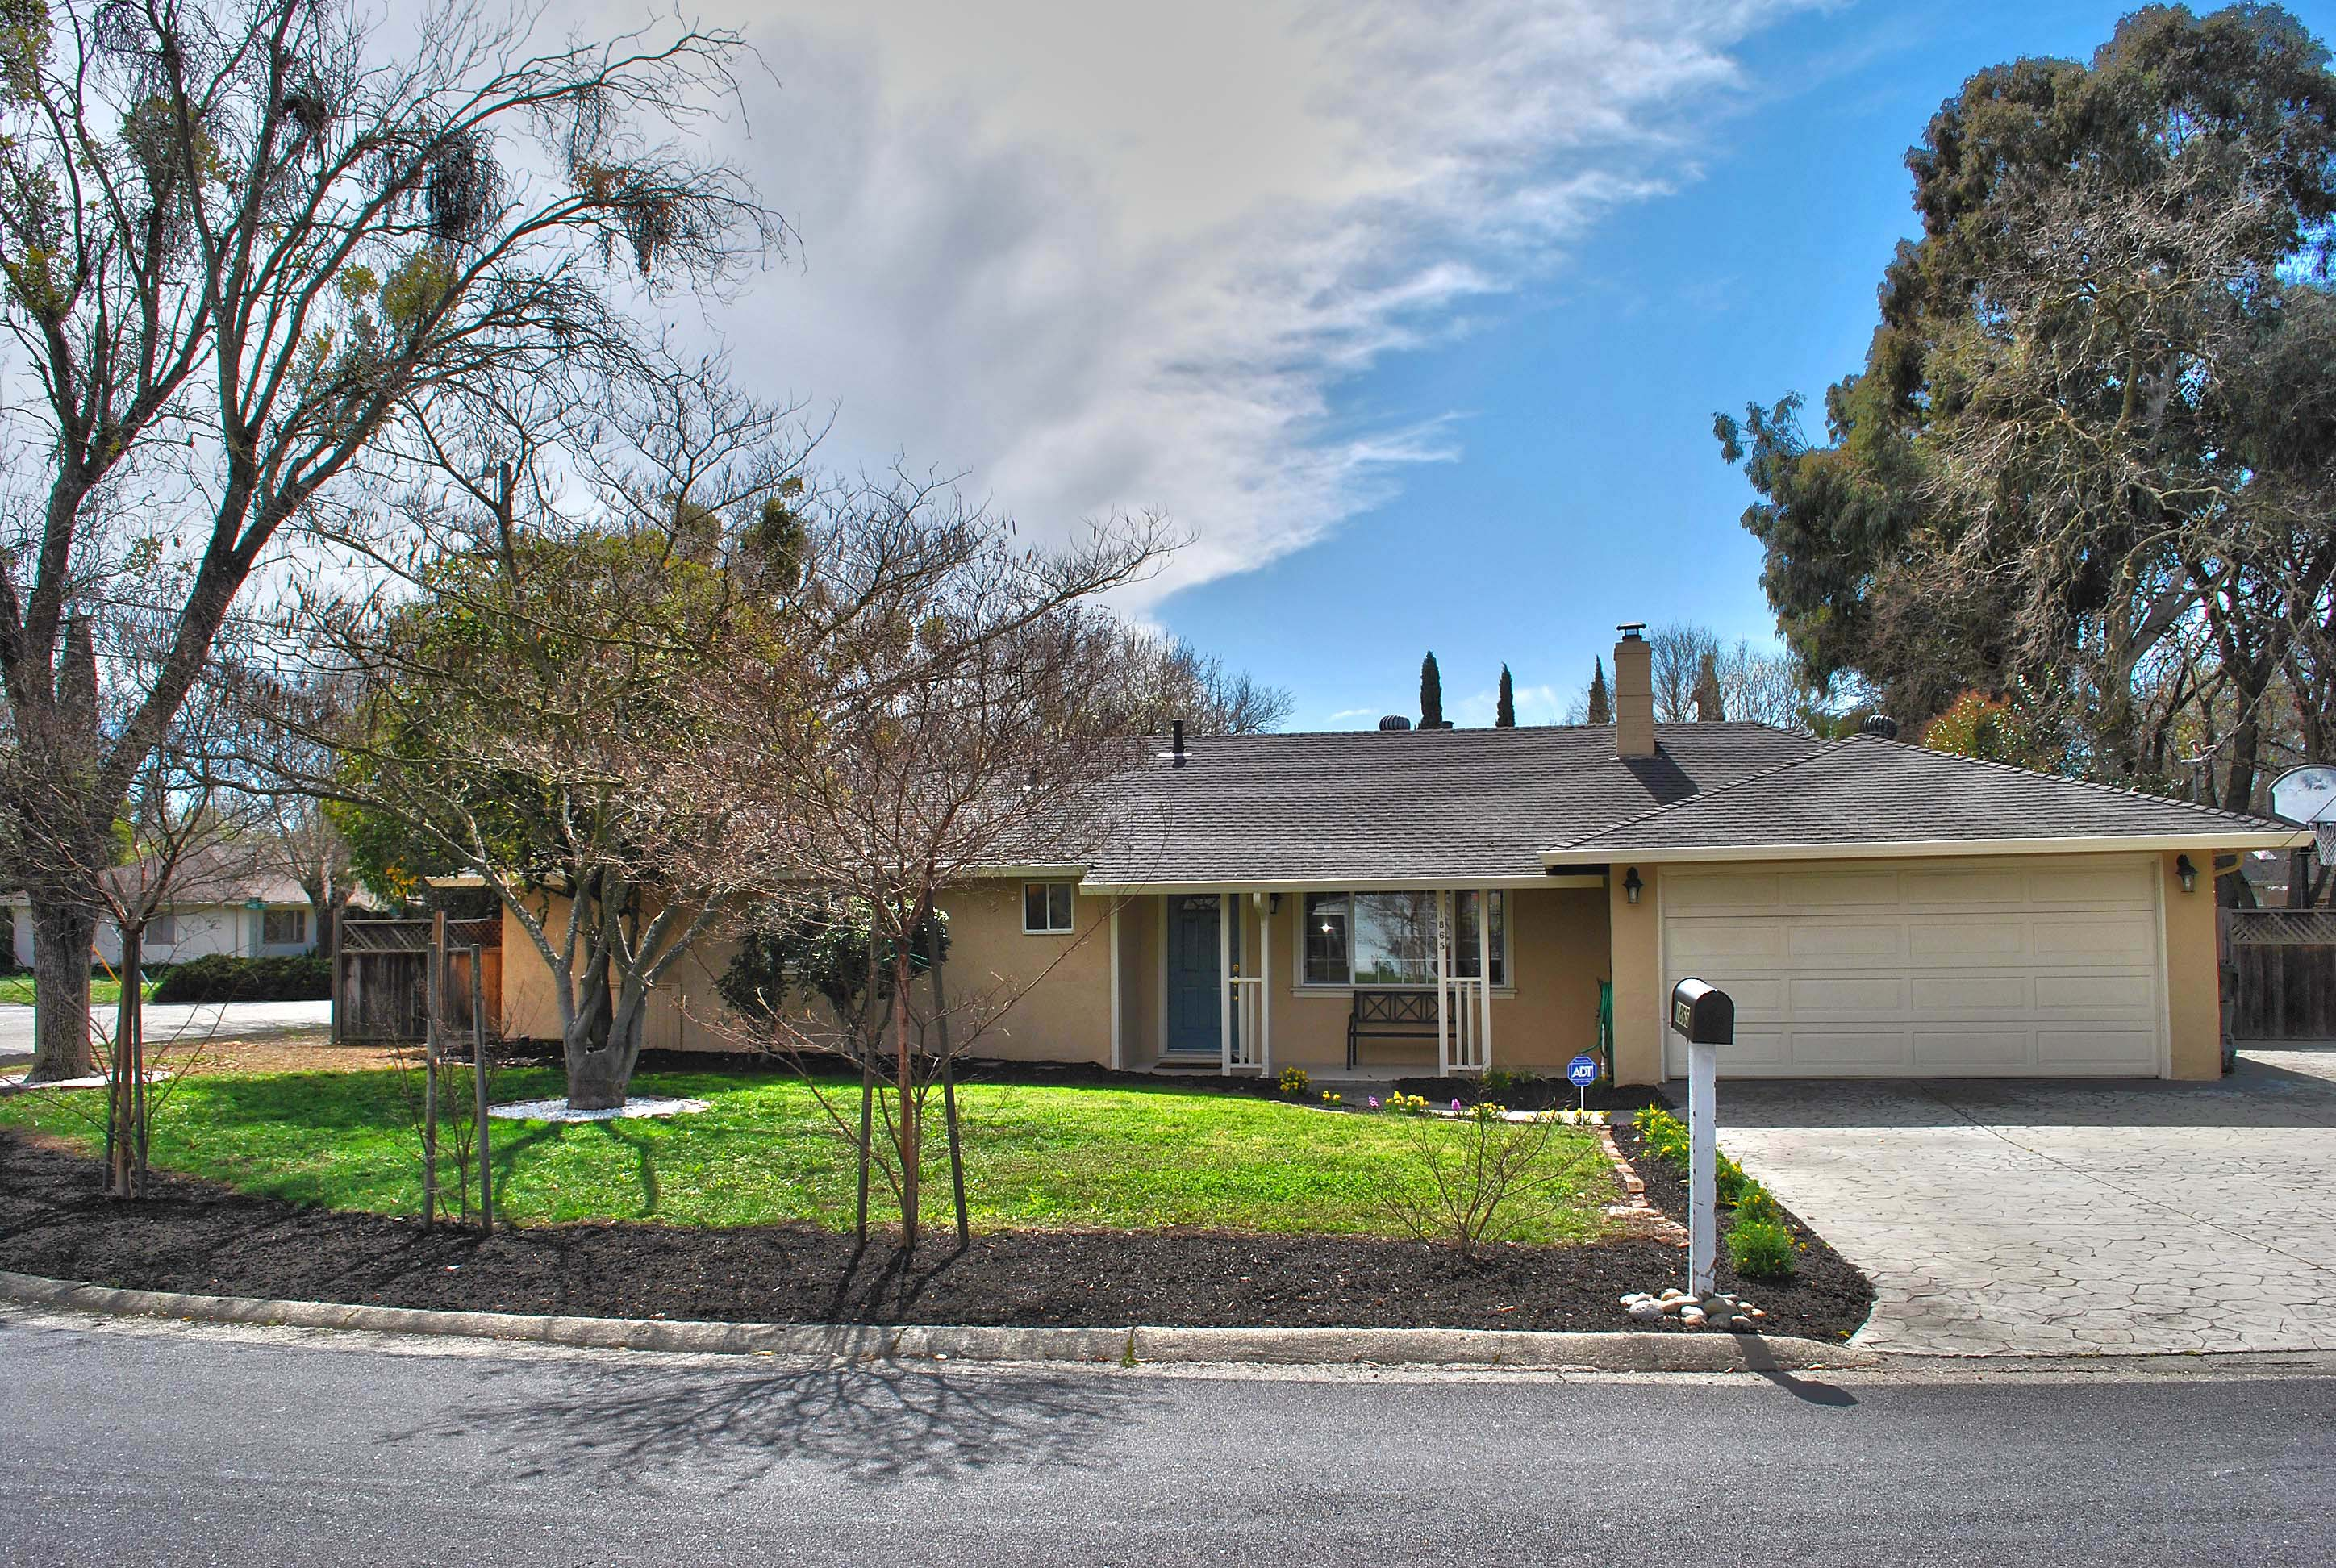 Jim Walberg: Gregory Garden's Finest!